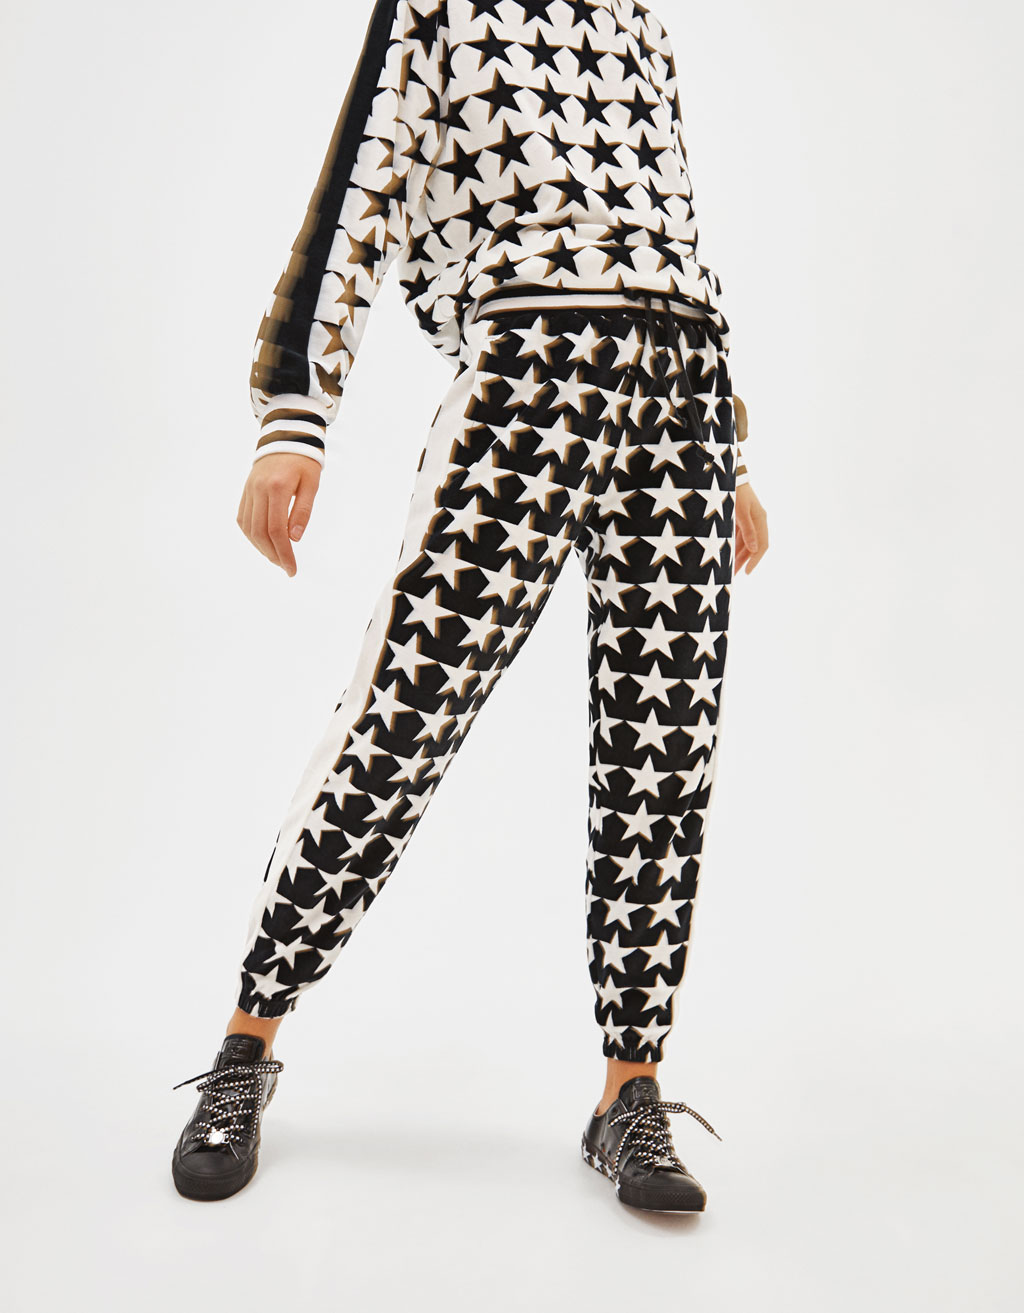 Joggingbroek Miley Cyrus x Converse